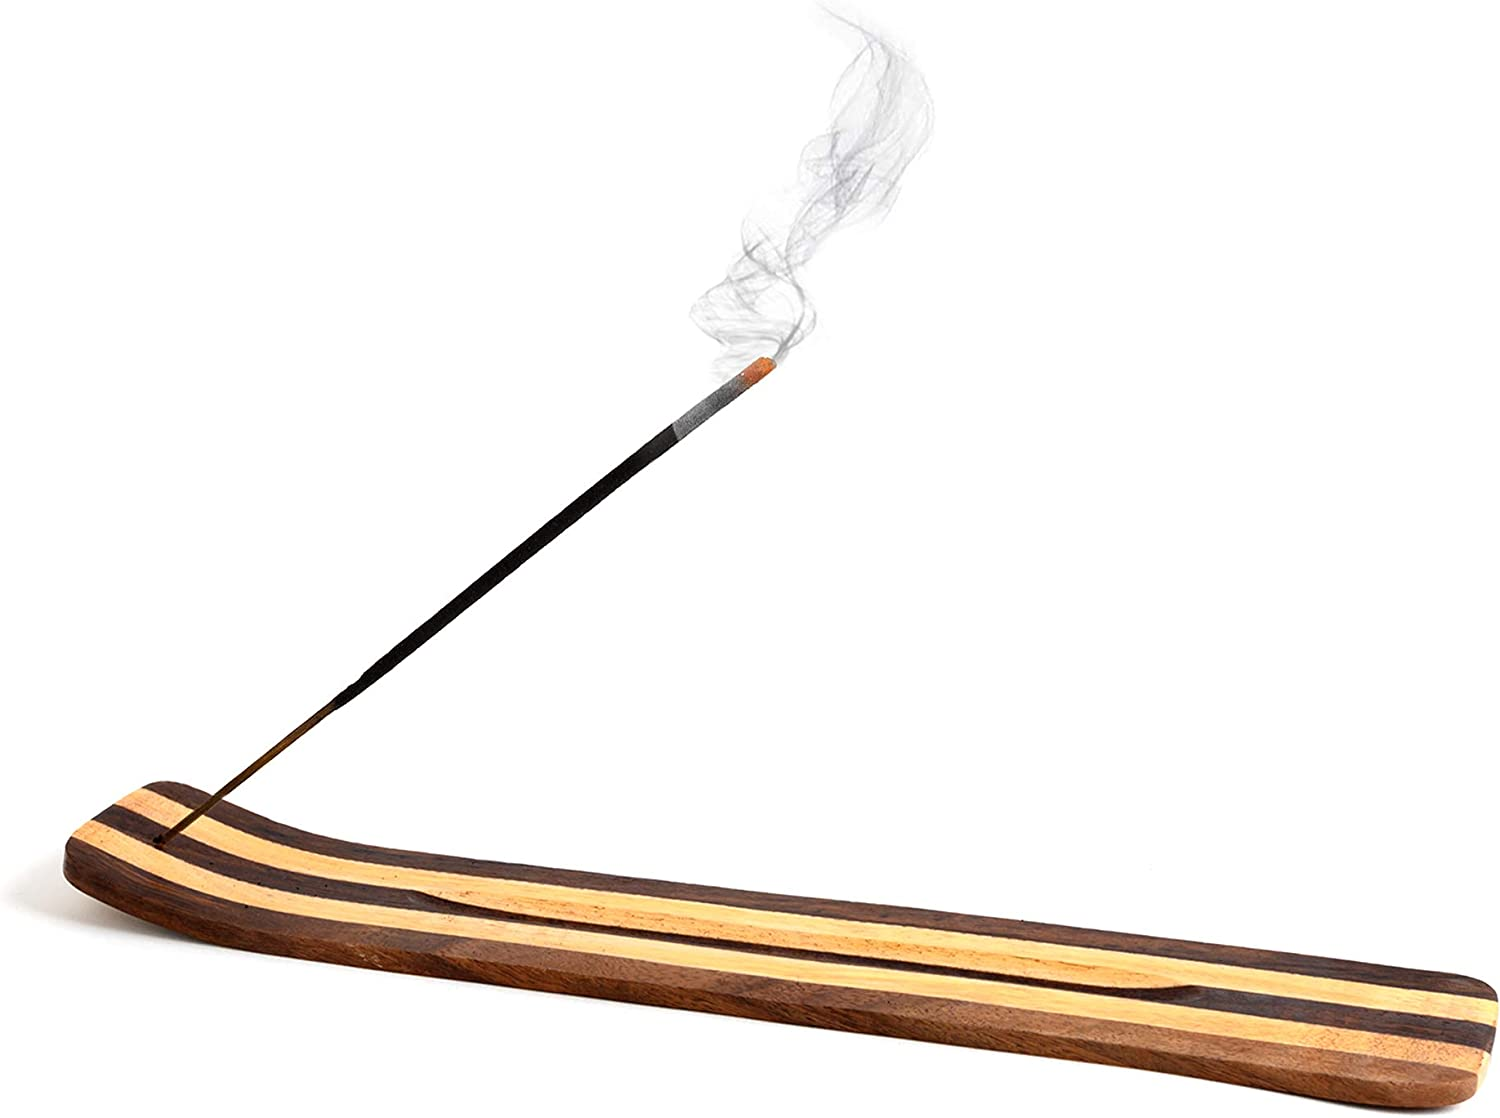 DUJEN Bamboo Incense Burner Holder with Three Holes for Sticks 13 Inches Long Ash Catcher Upgraded Wood Incense Sticks Holder Suitable for Incense Cone and Sticks